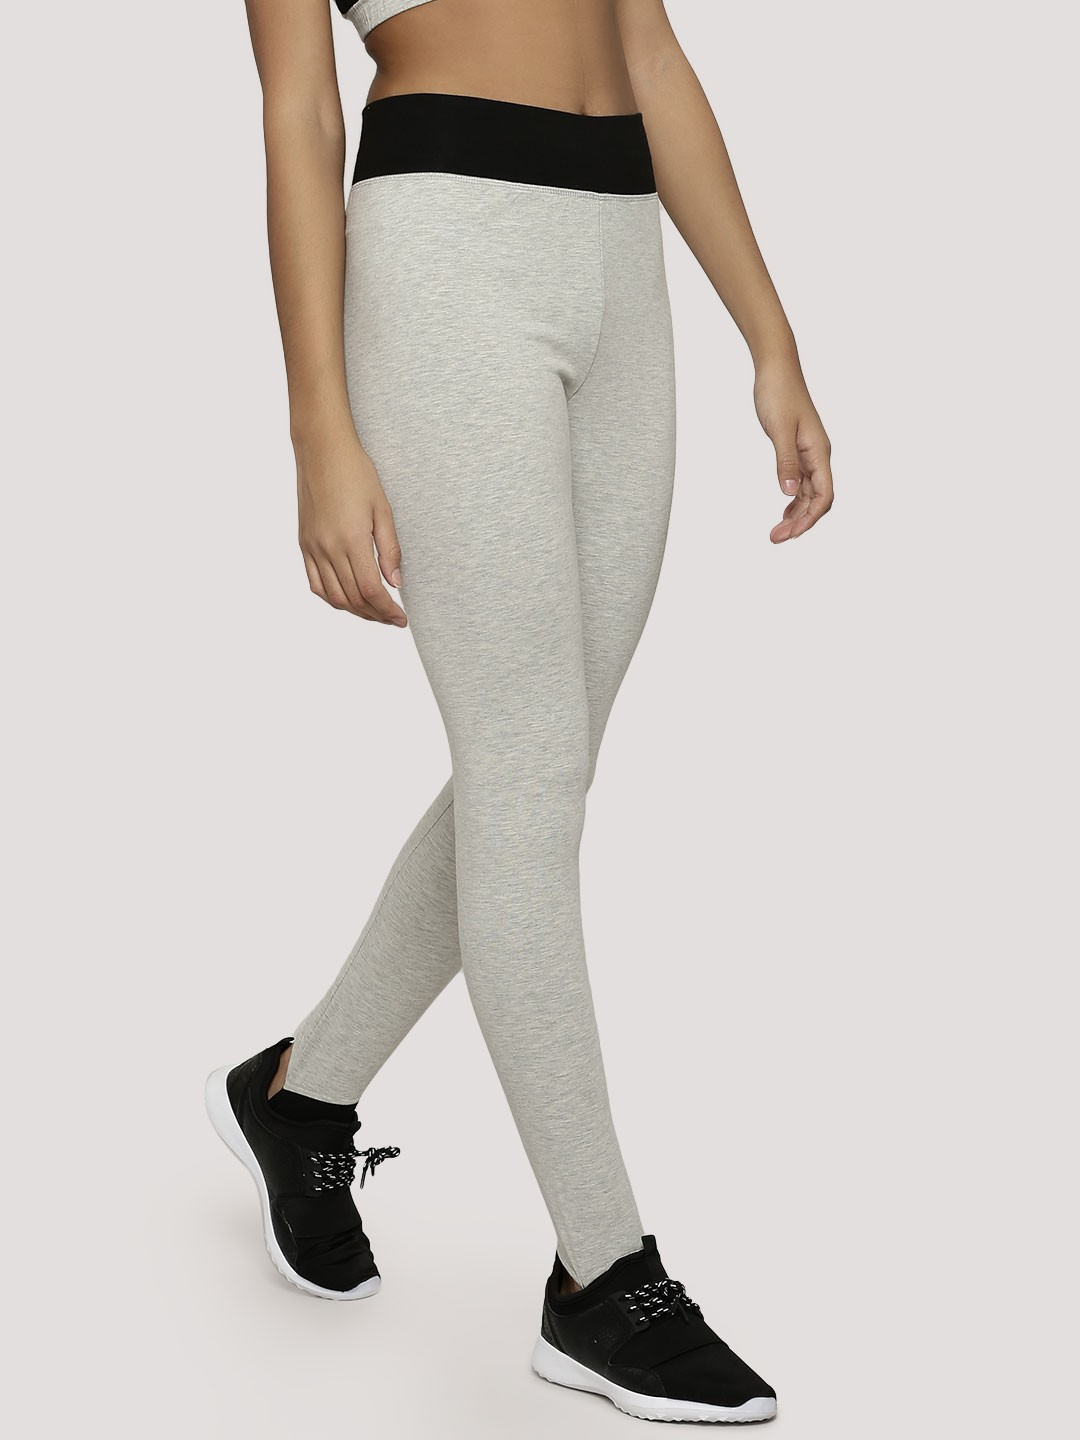 Shop for womens stirrup leggings online at Target. Free shipping on purchases over $35 and save 5% every day with your Target REDcard.